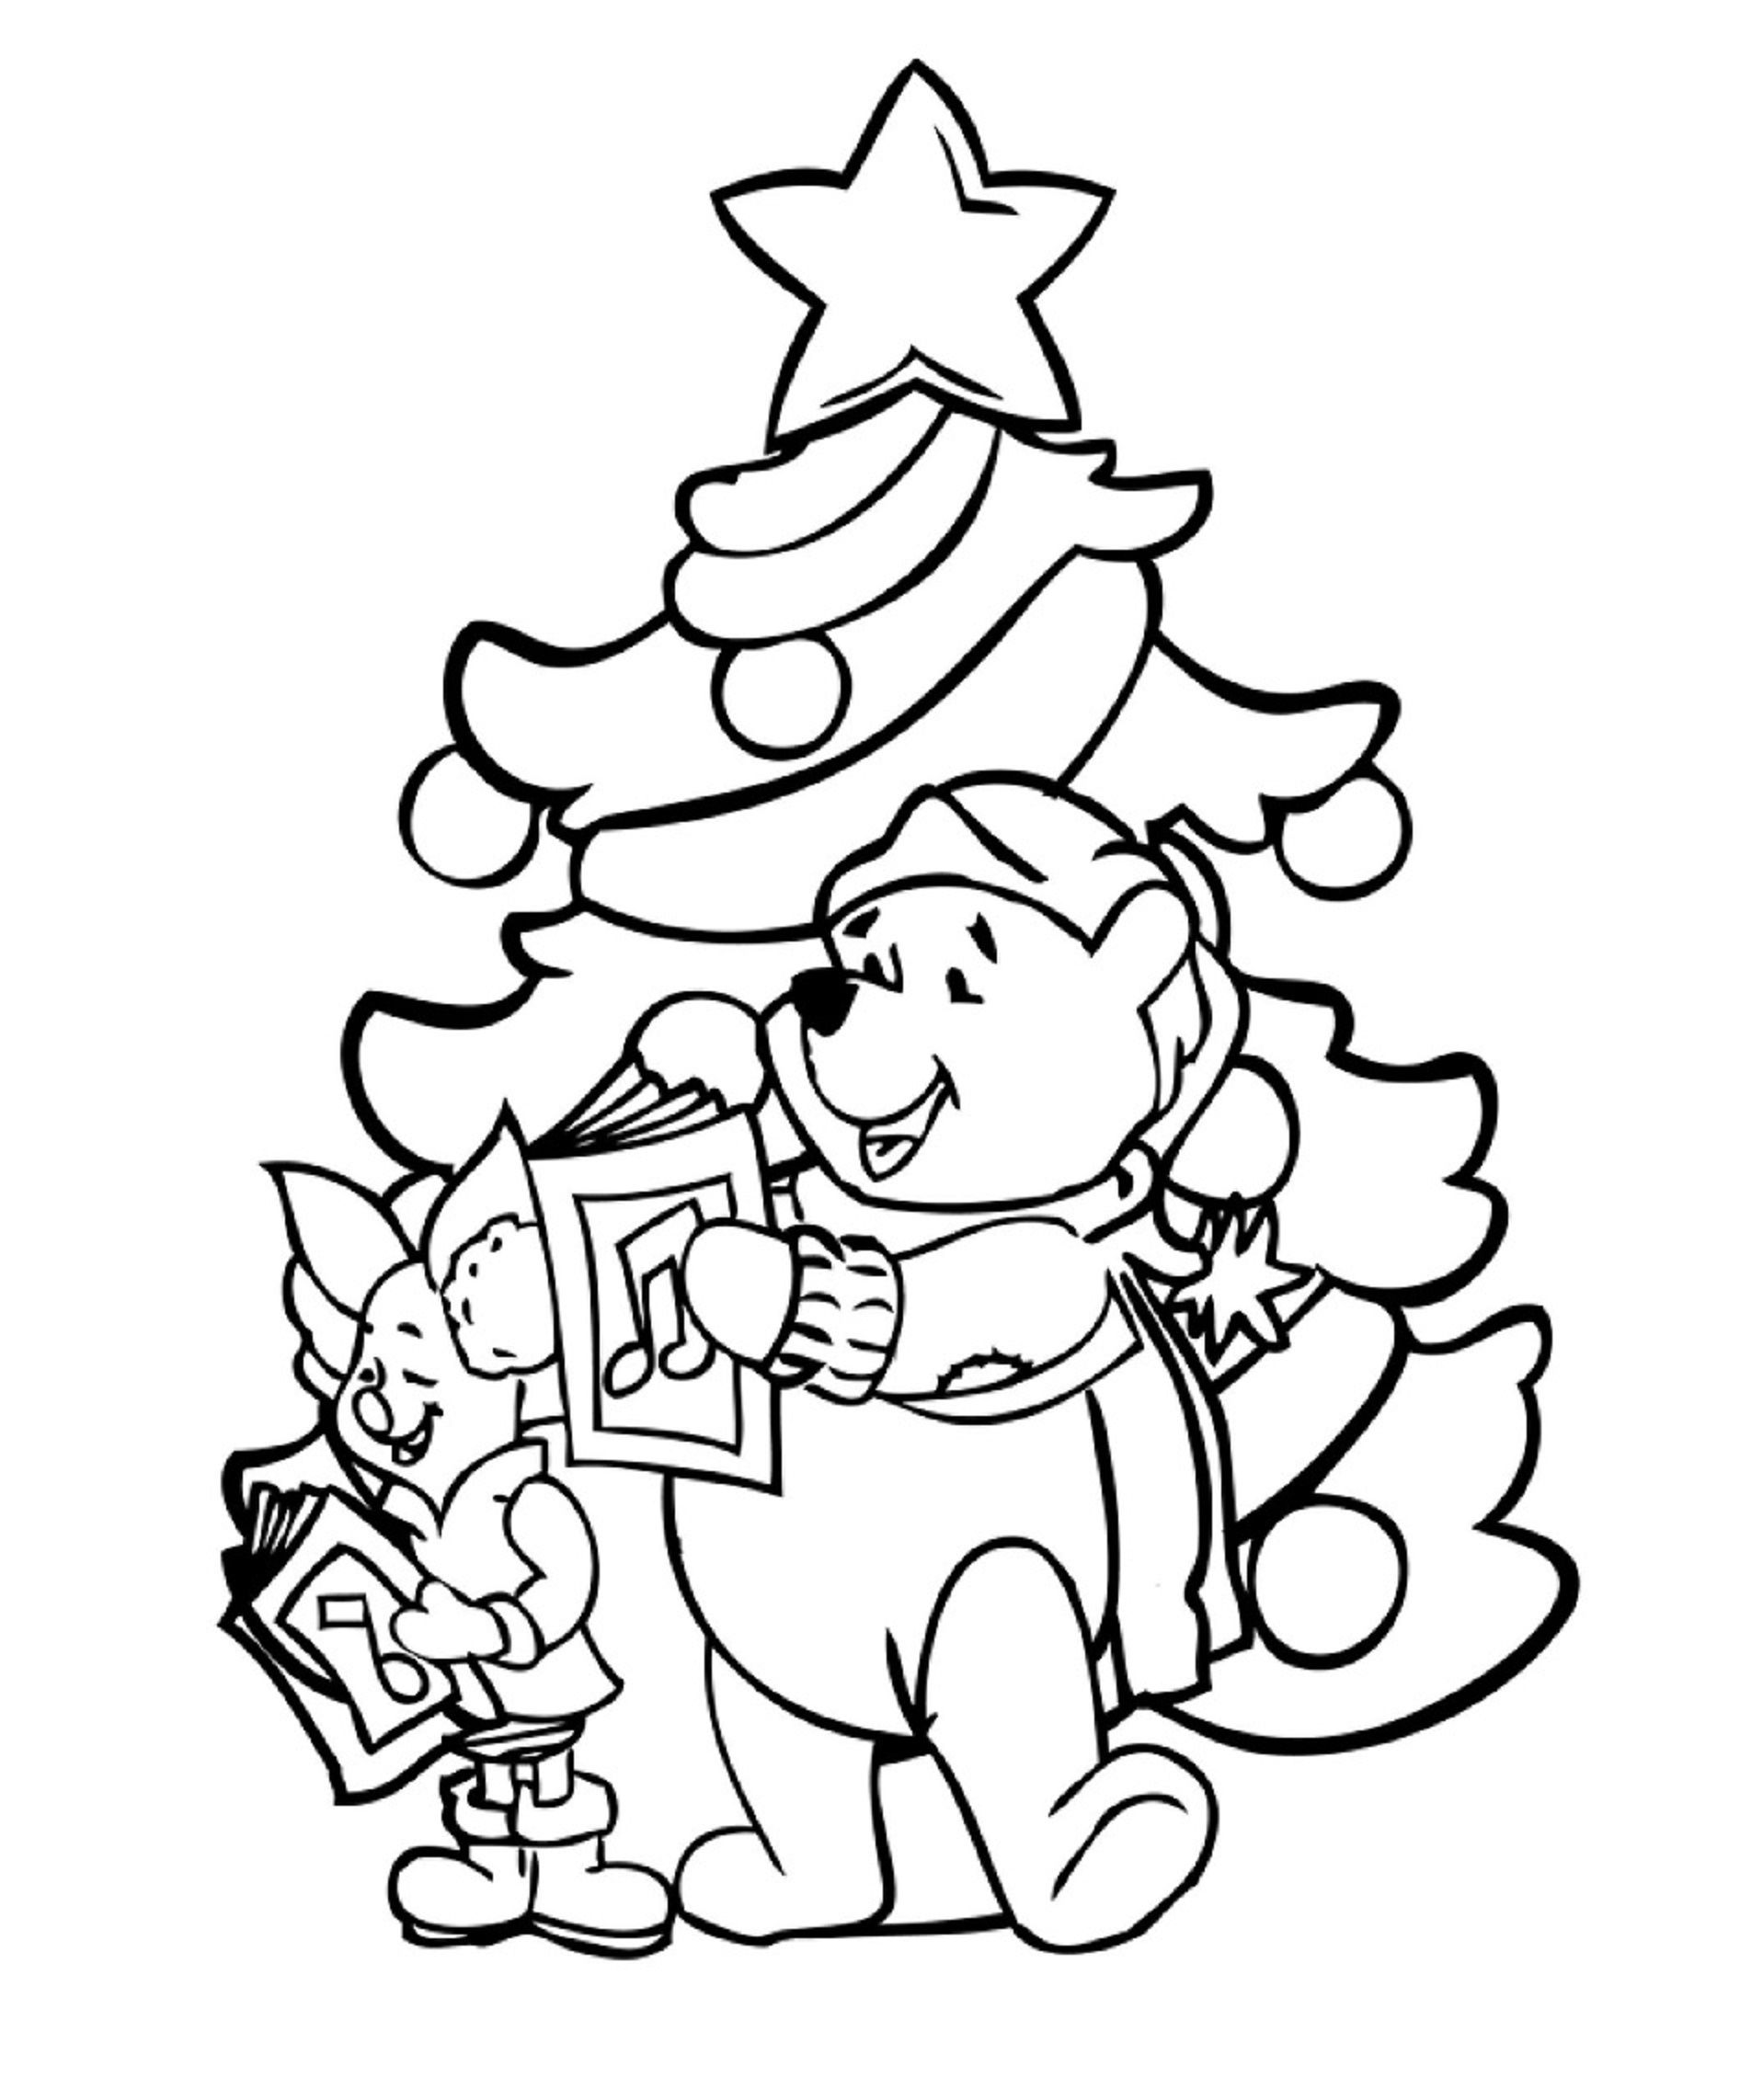 Winnie Knorretje Cartoon Coloring Pages Christmas Coloring Sheets Disney Coloring Pages